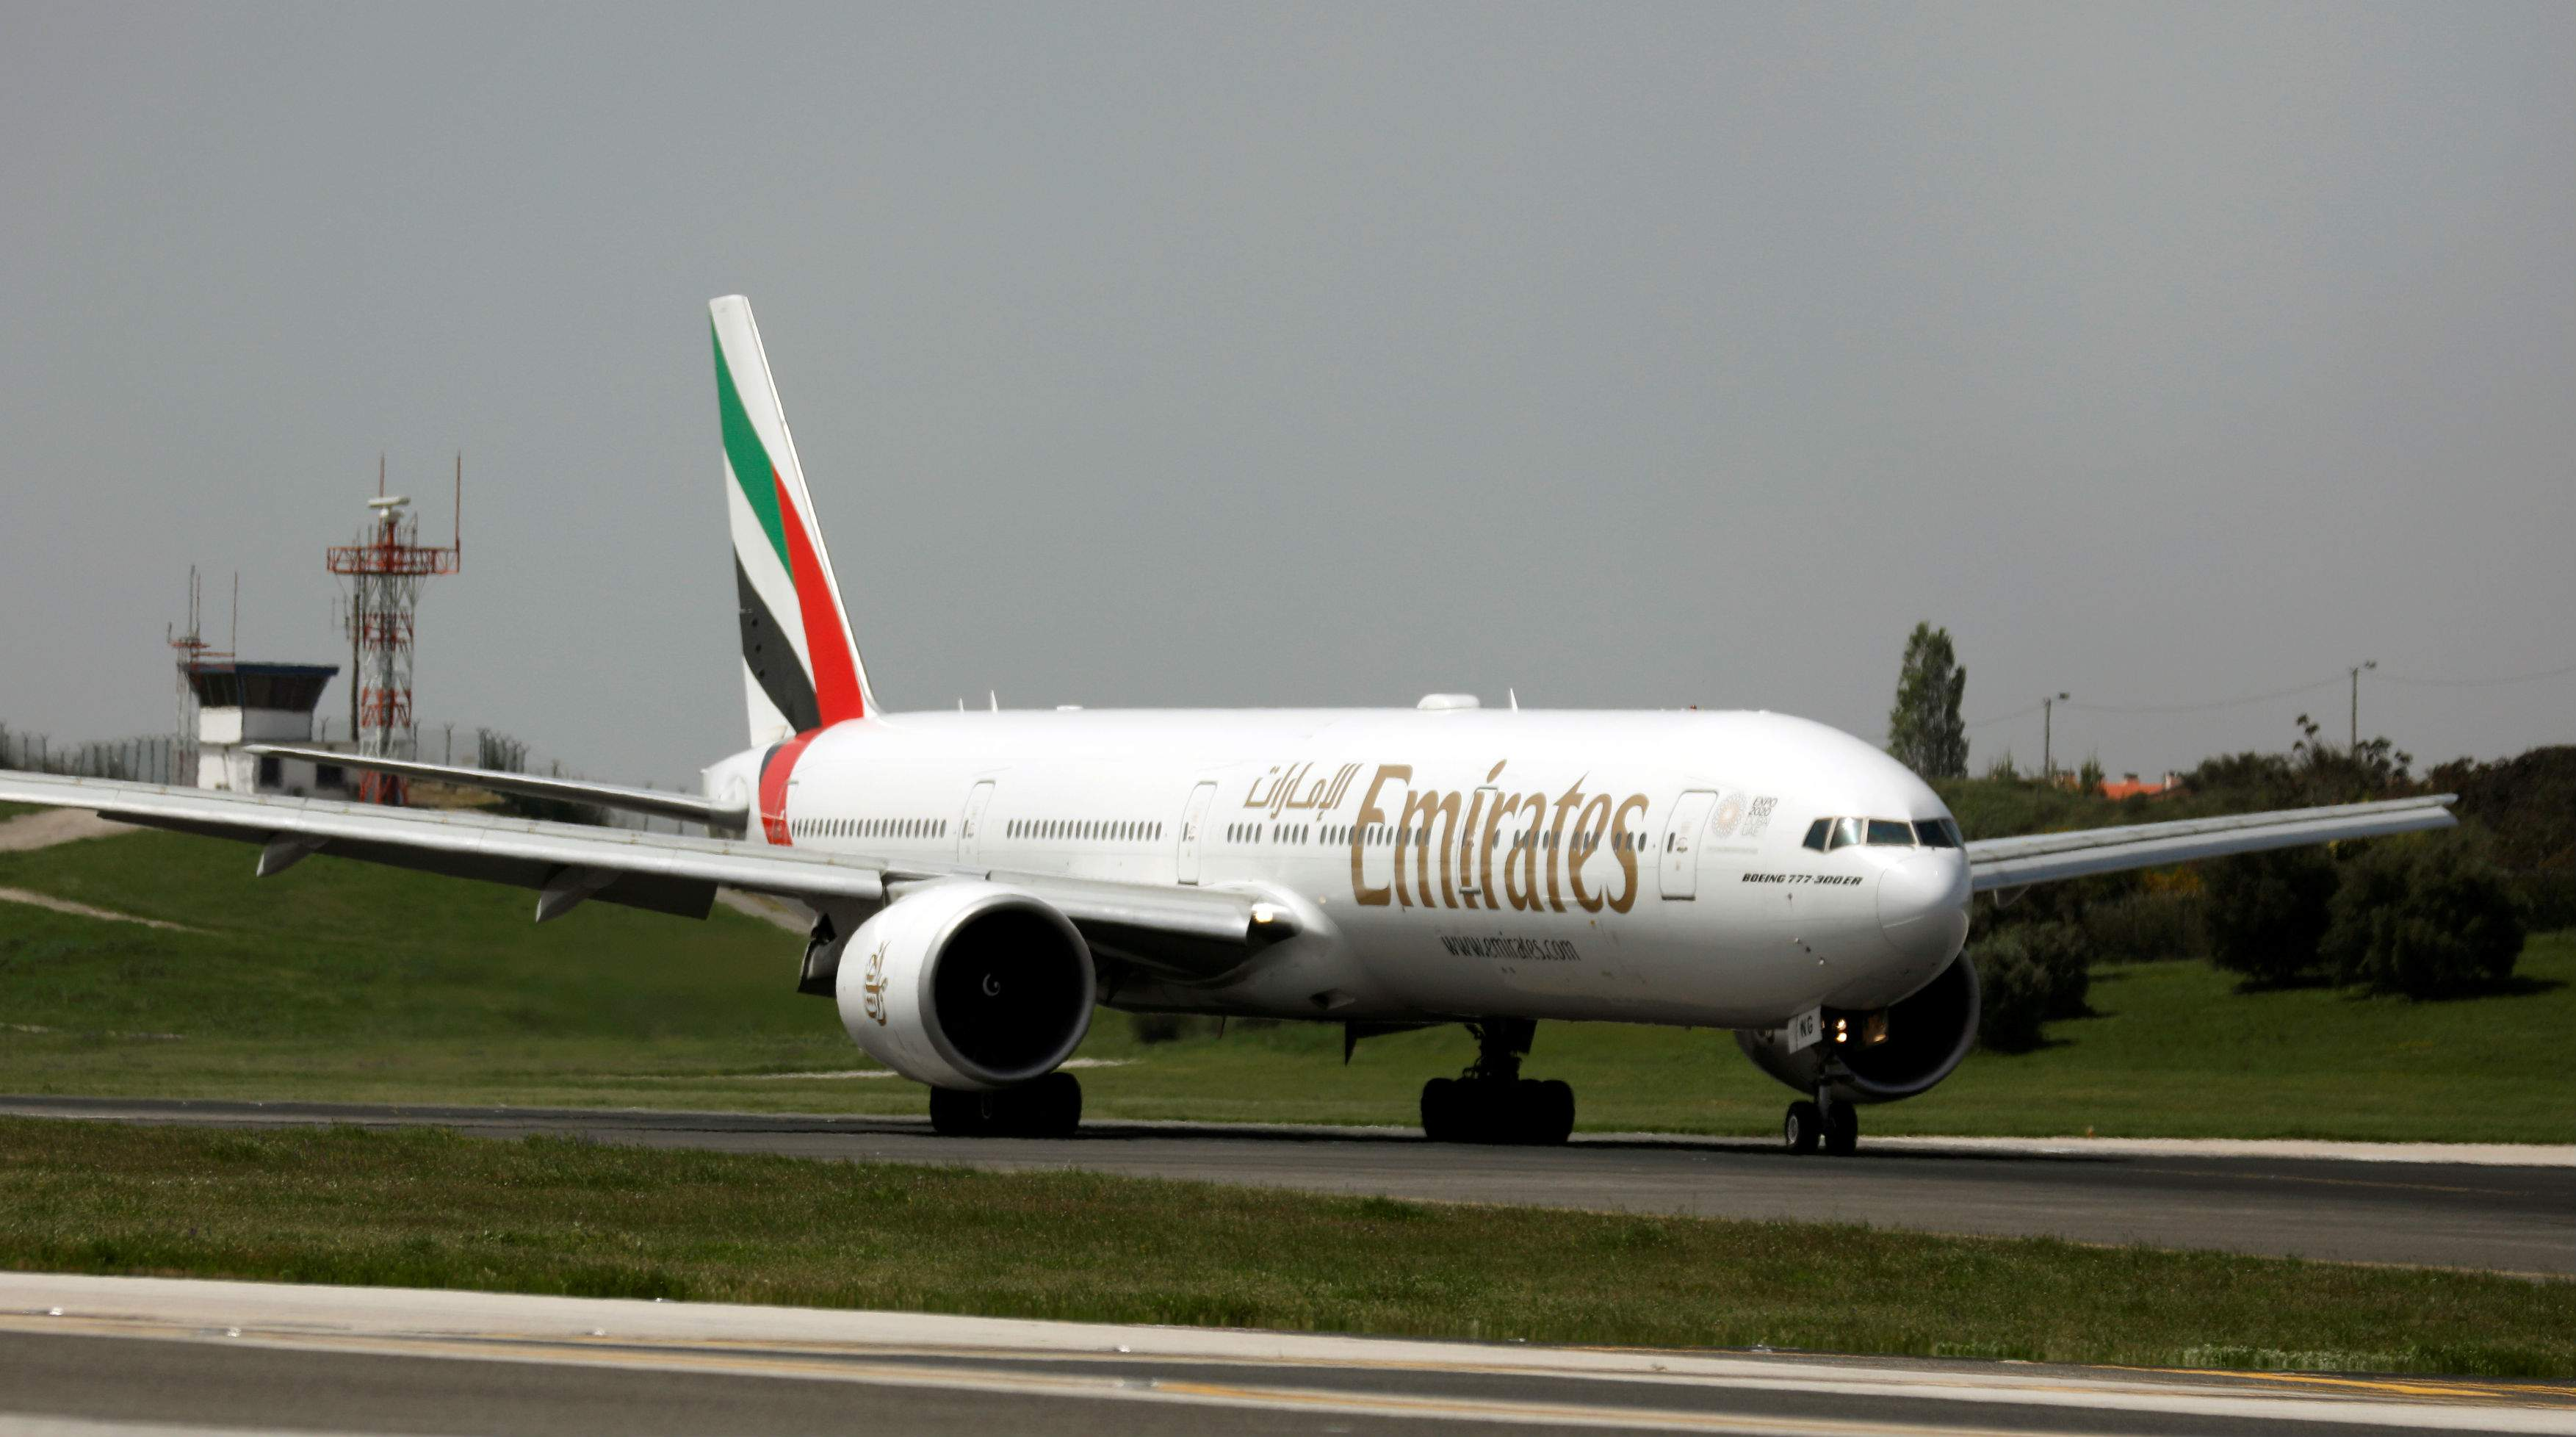 emirates-avion.jpg